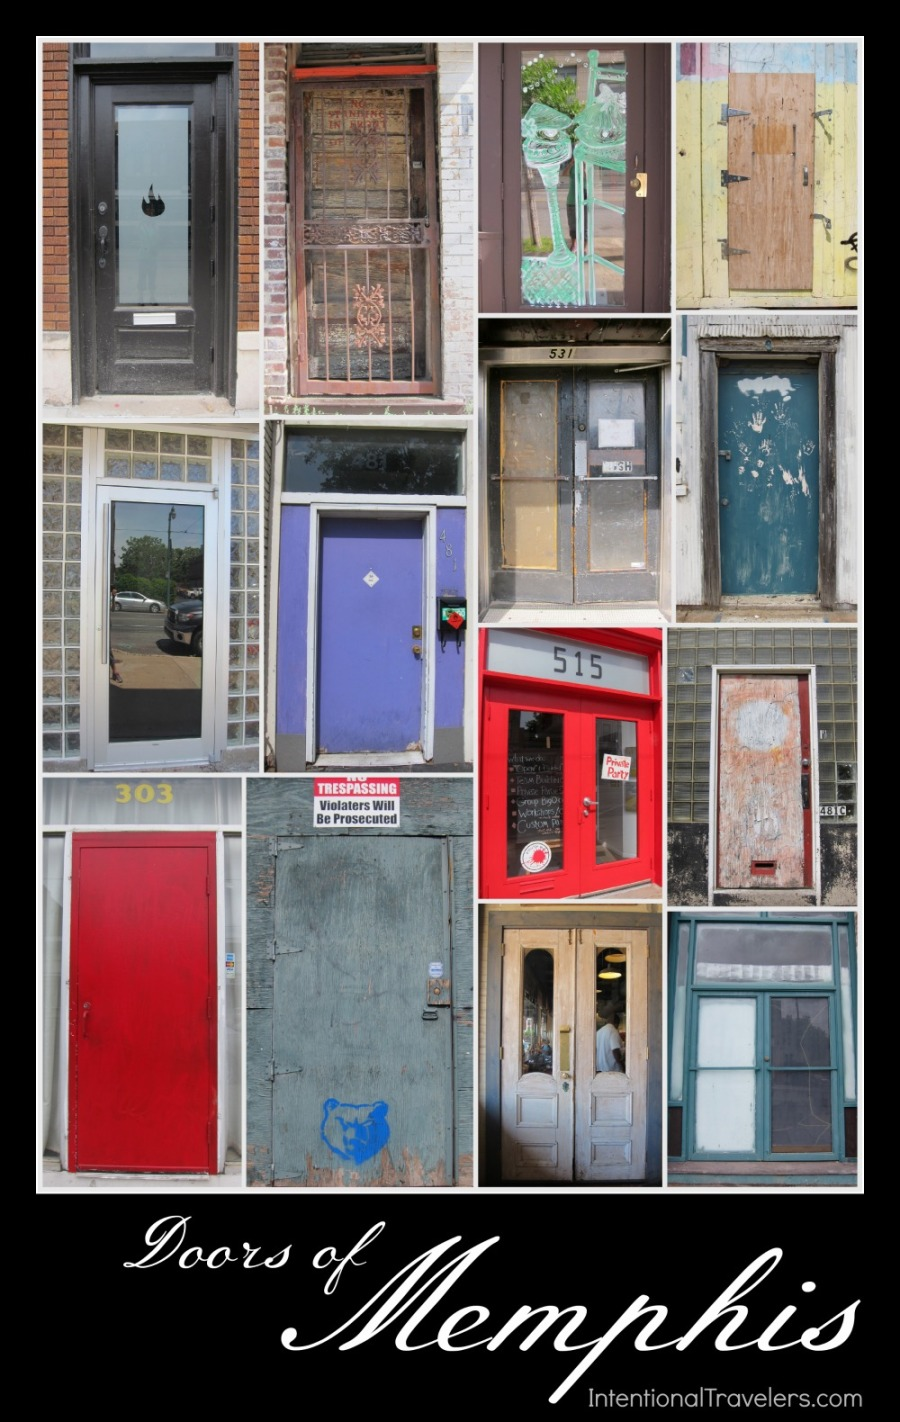 Doors of Memphis | Intentional Travelers